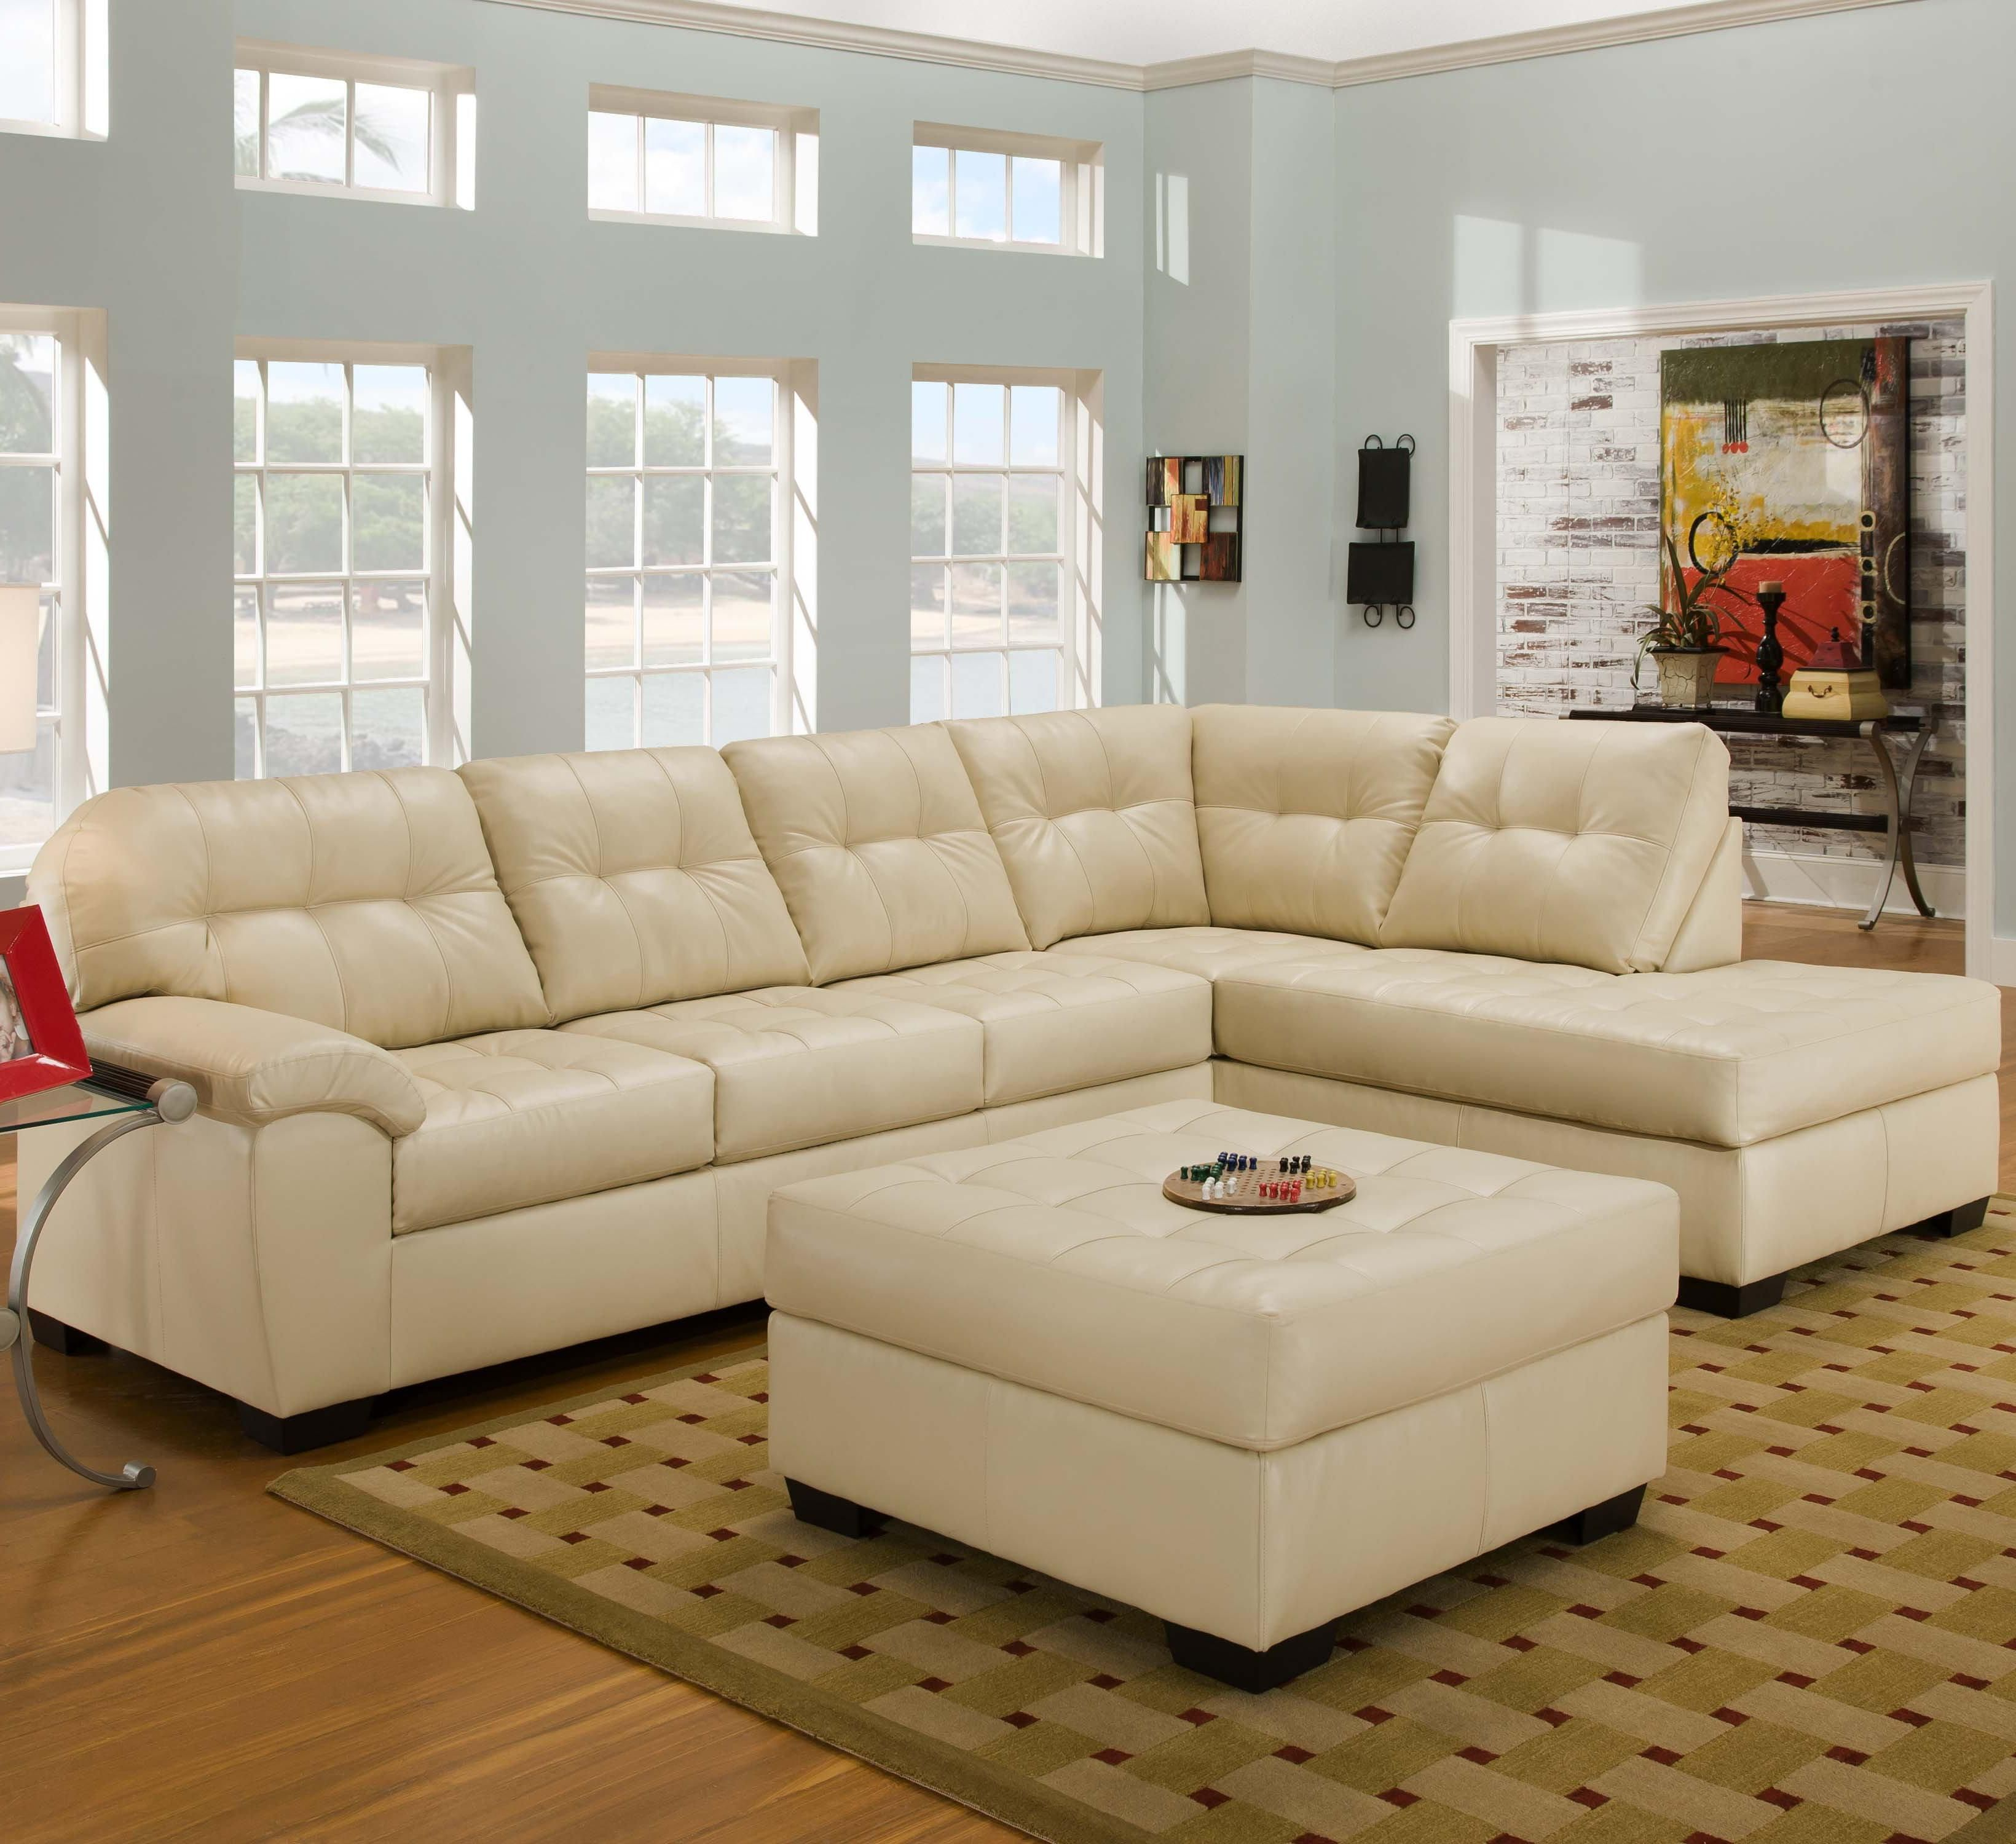 rent in overview darcy to and furniture blue loveseat sofa stores own majik